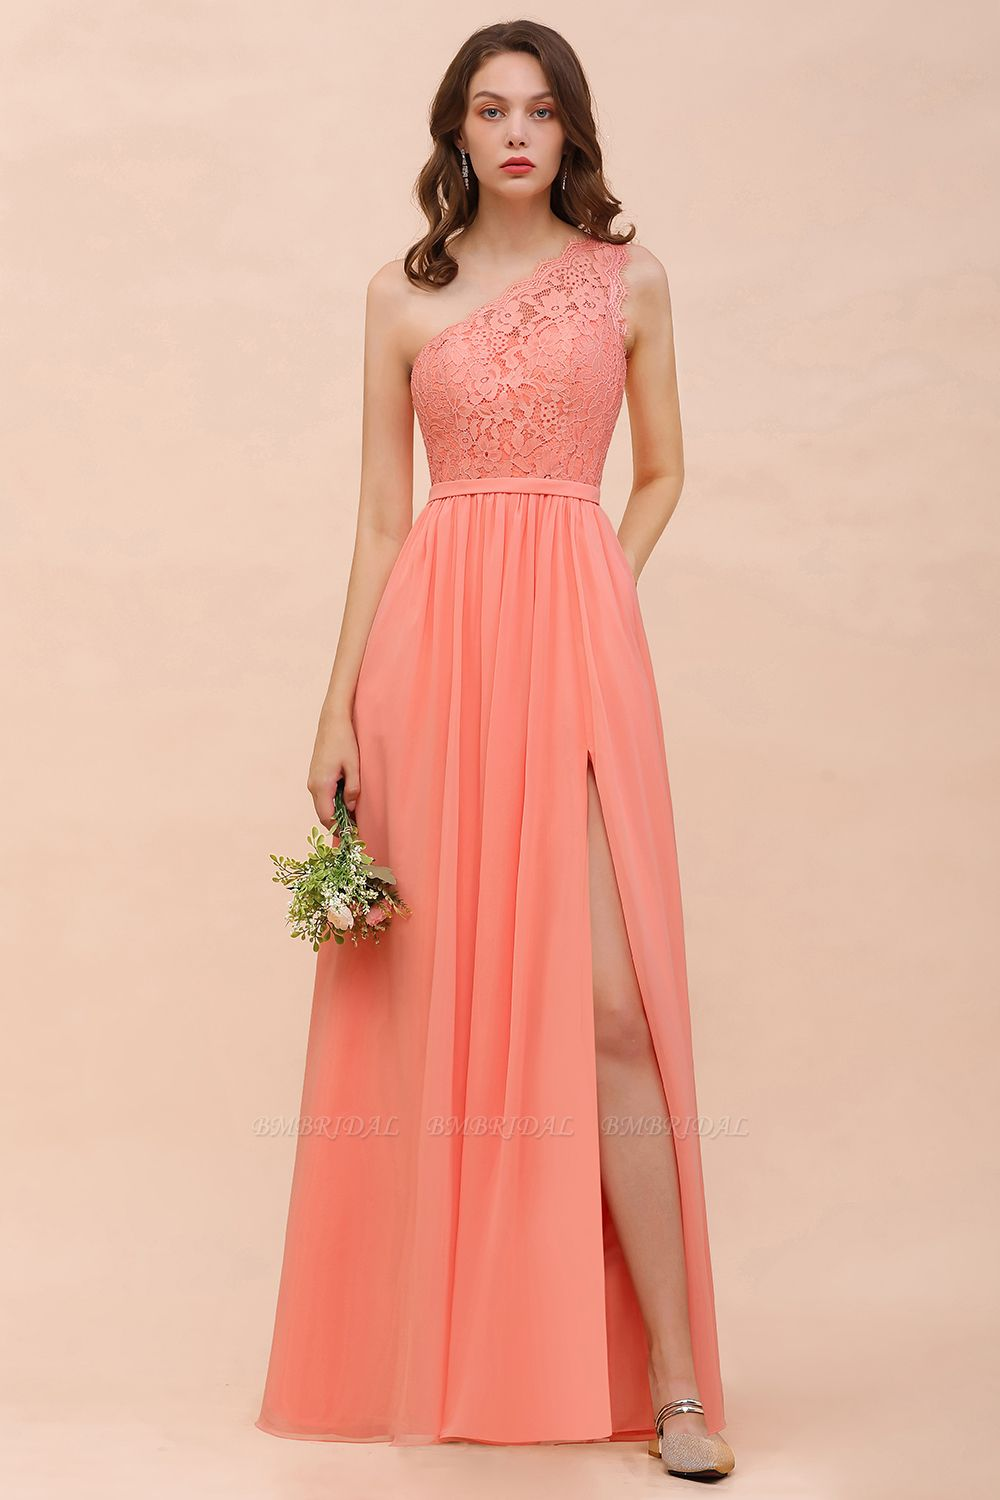 Gorgeous One Shoulder Slit Coral Chiffon Bridesmaid Dresses with Lace